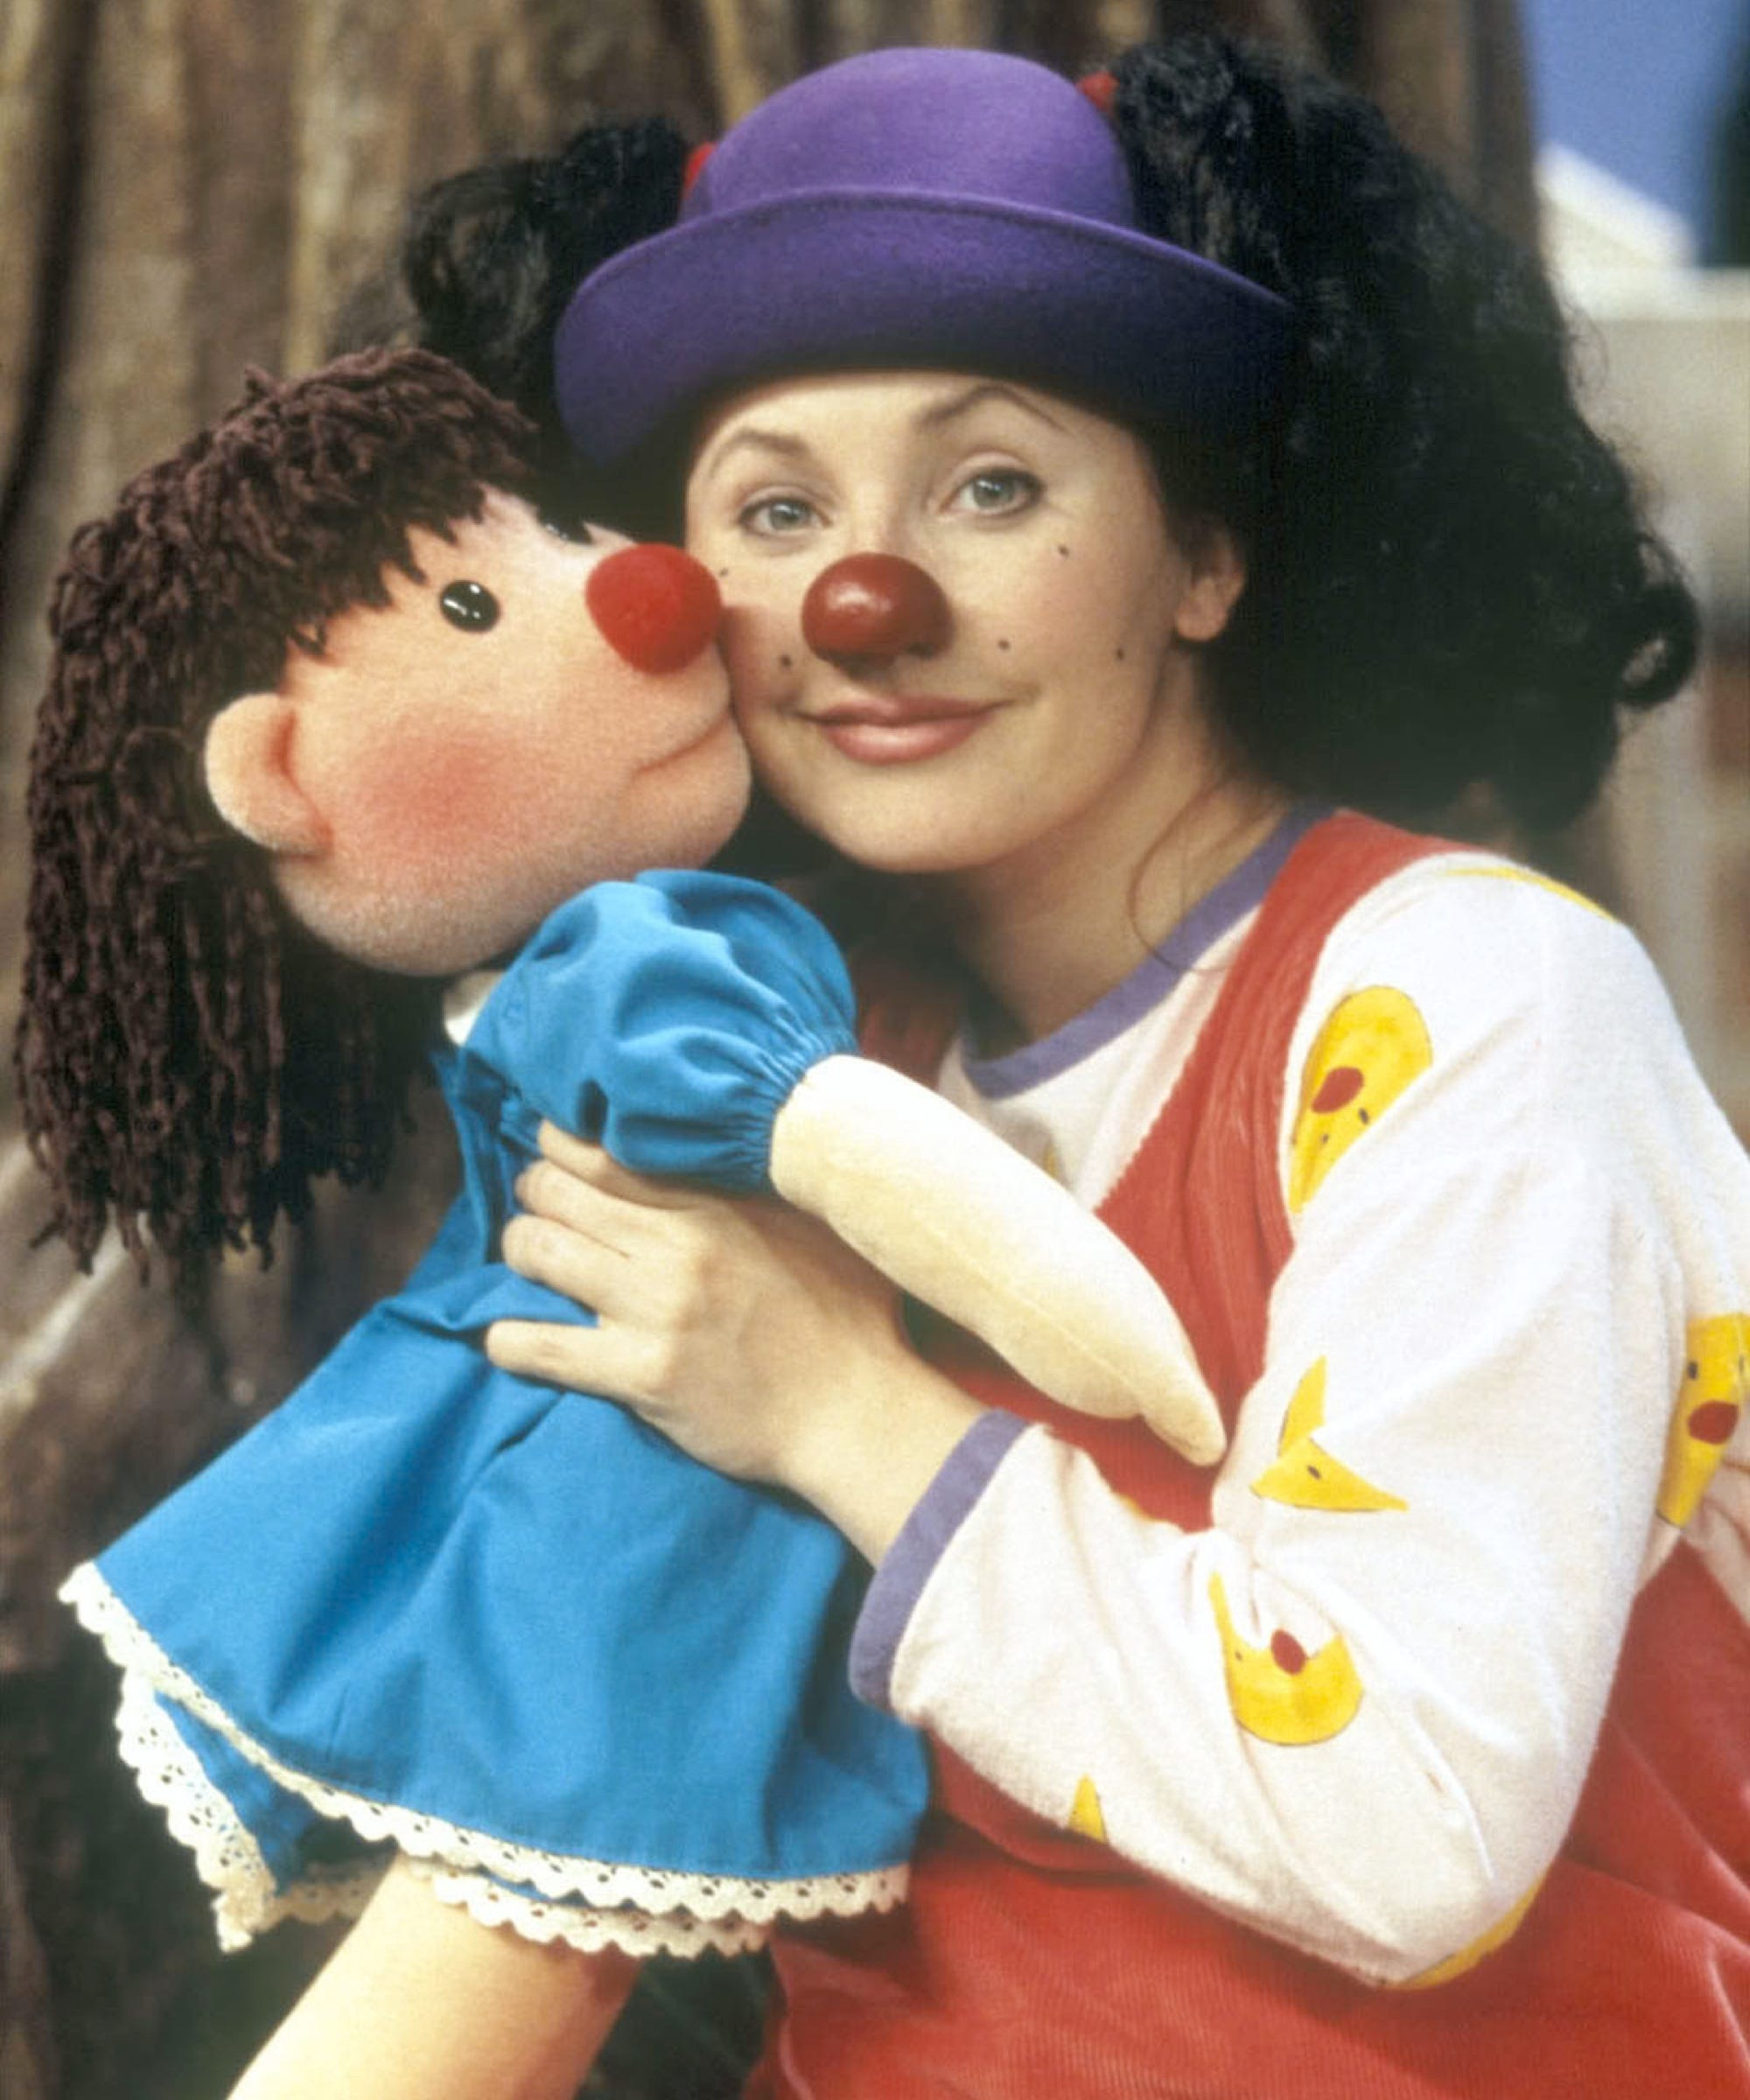 Comfy Couch ComLoonette The Clown On The Big Comfy Couch Memba Her Tmz